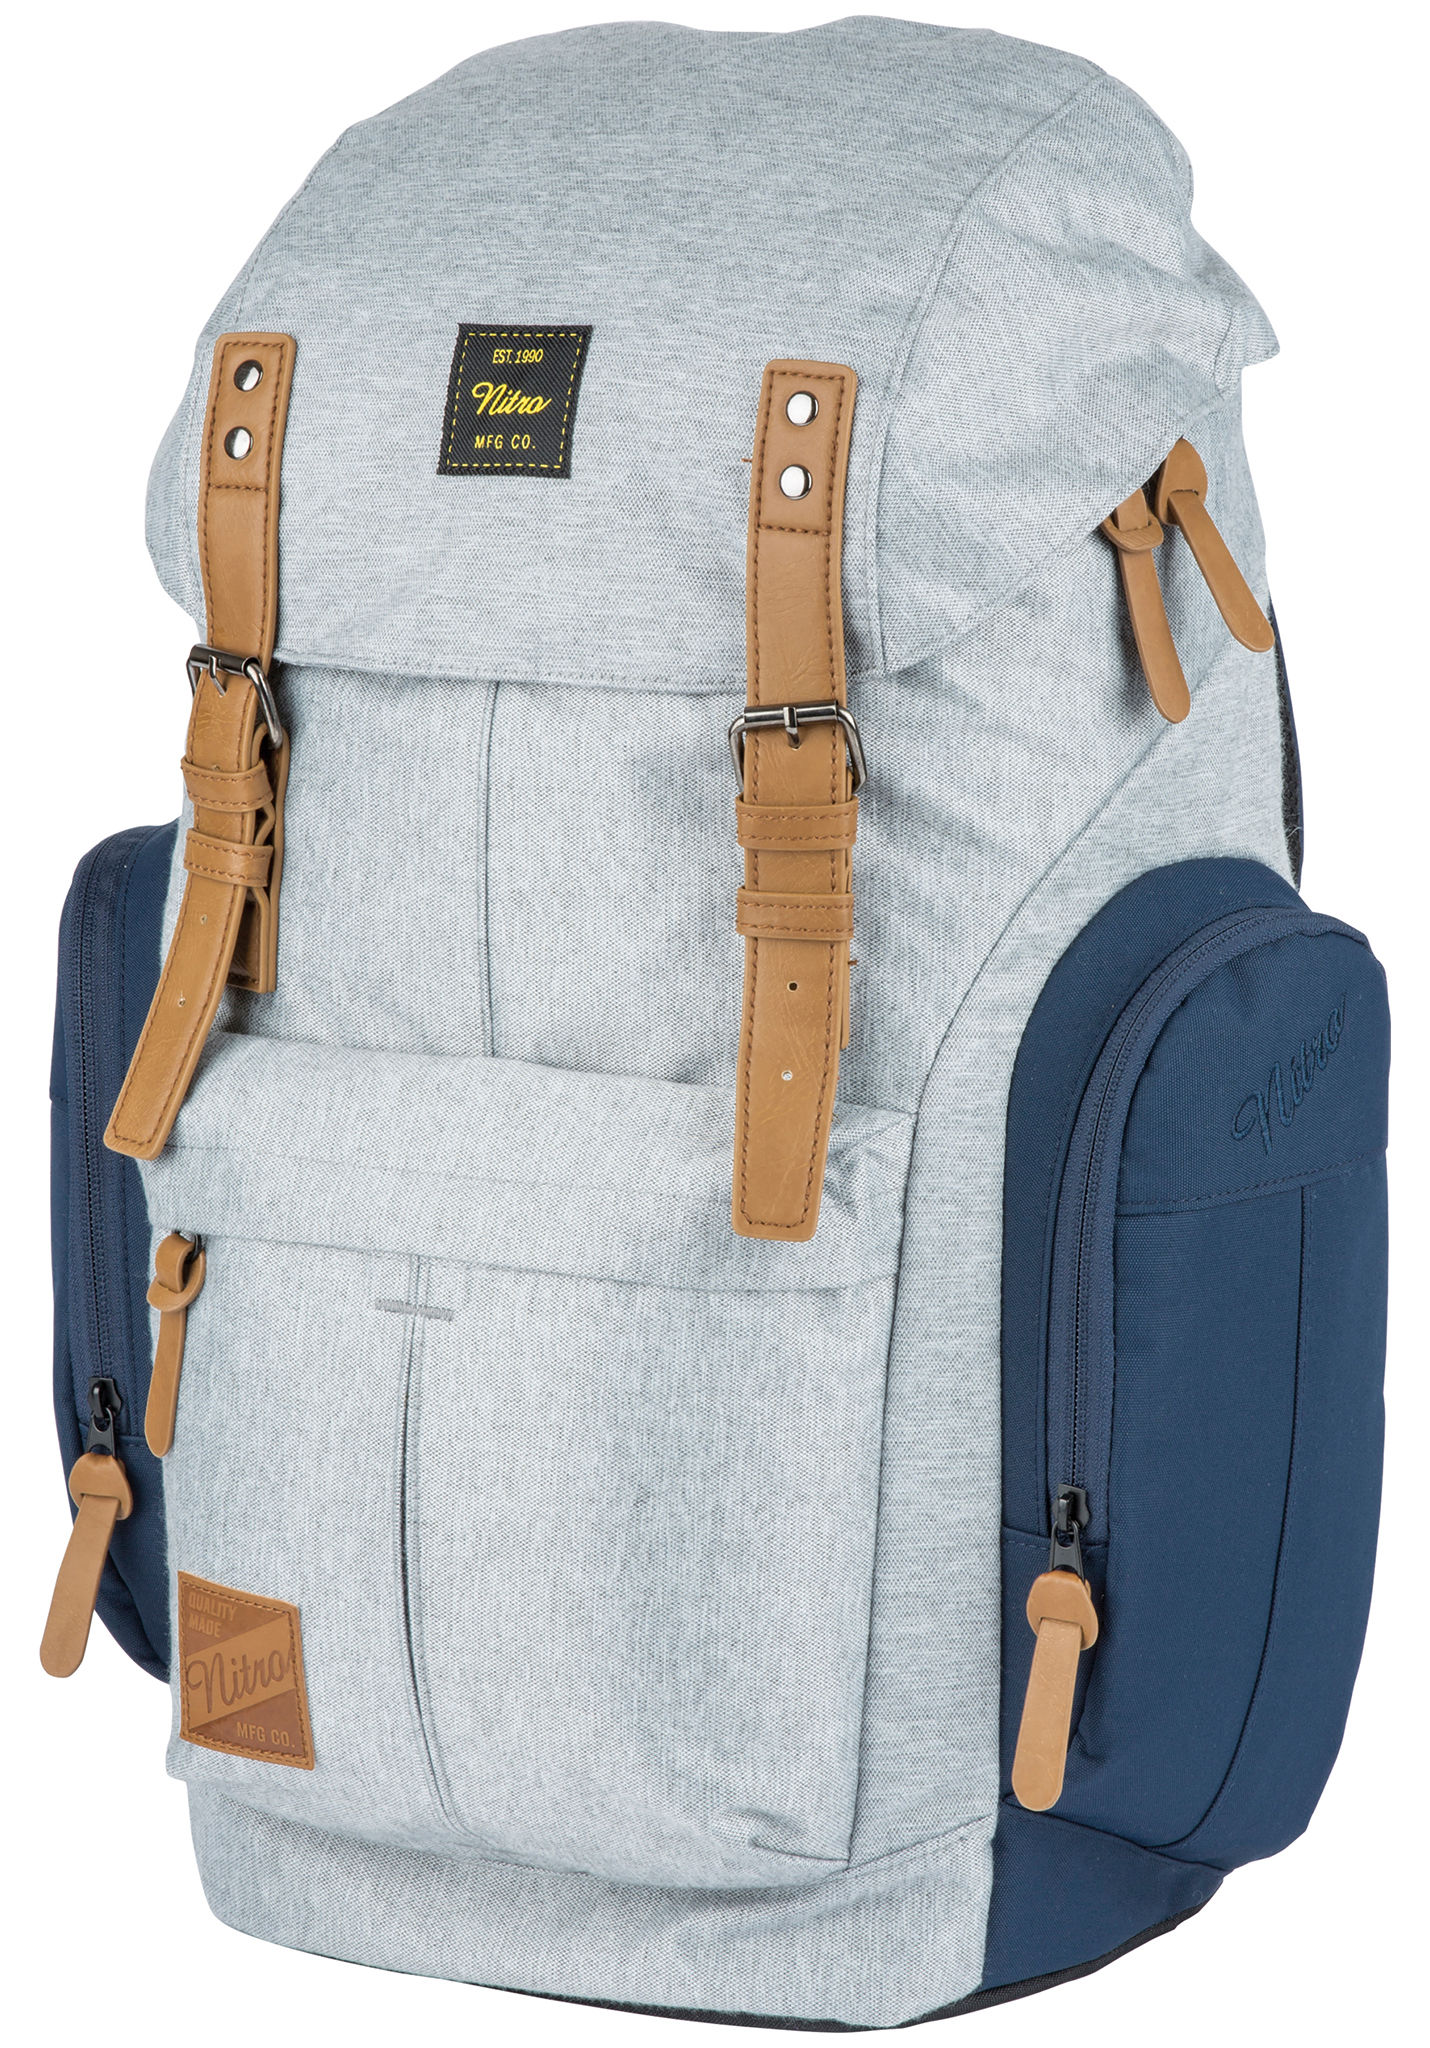 b41a2cd13f NITRO Daypacker 32L - Sac à dos - Gris - Planet Sports